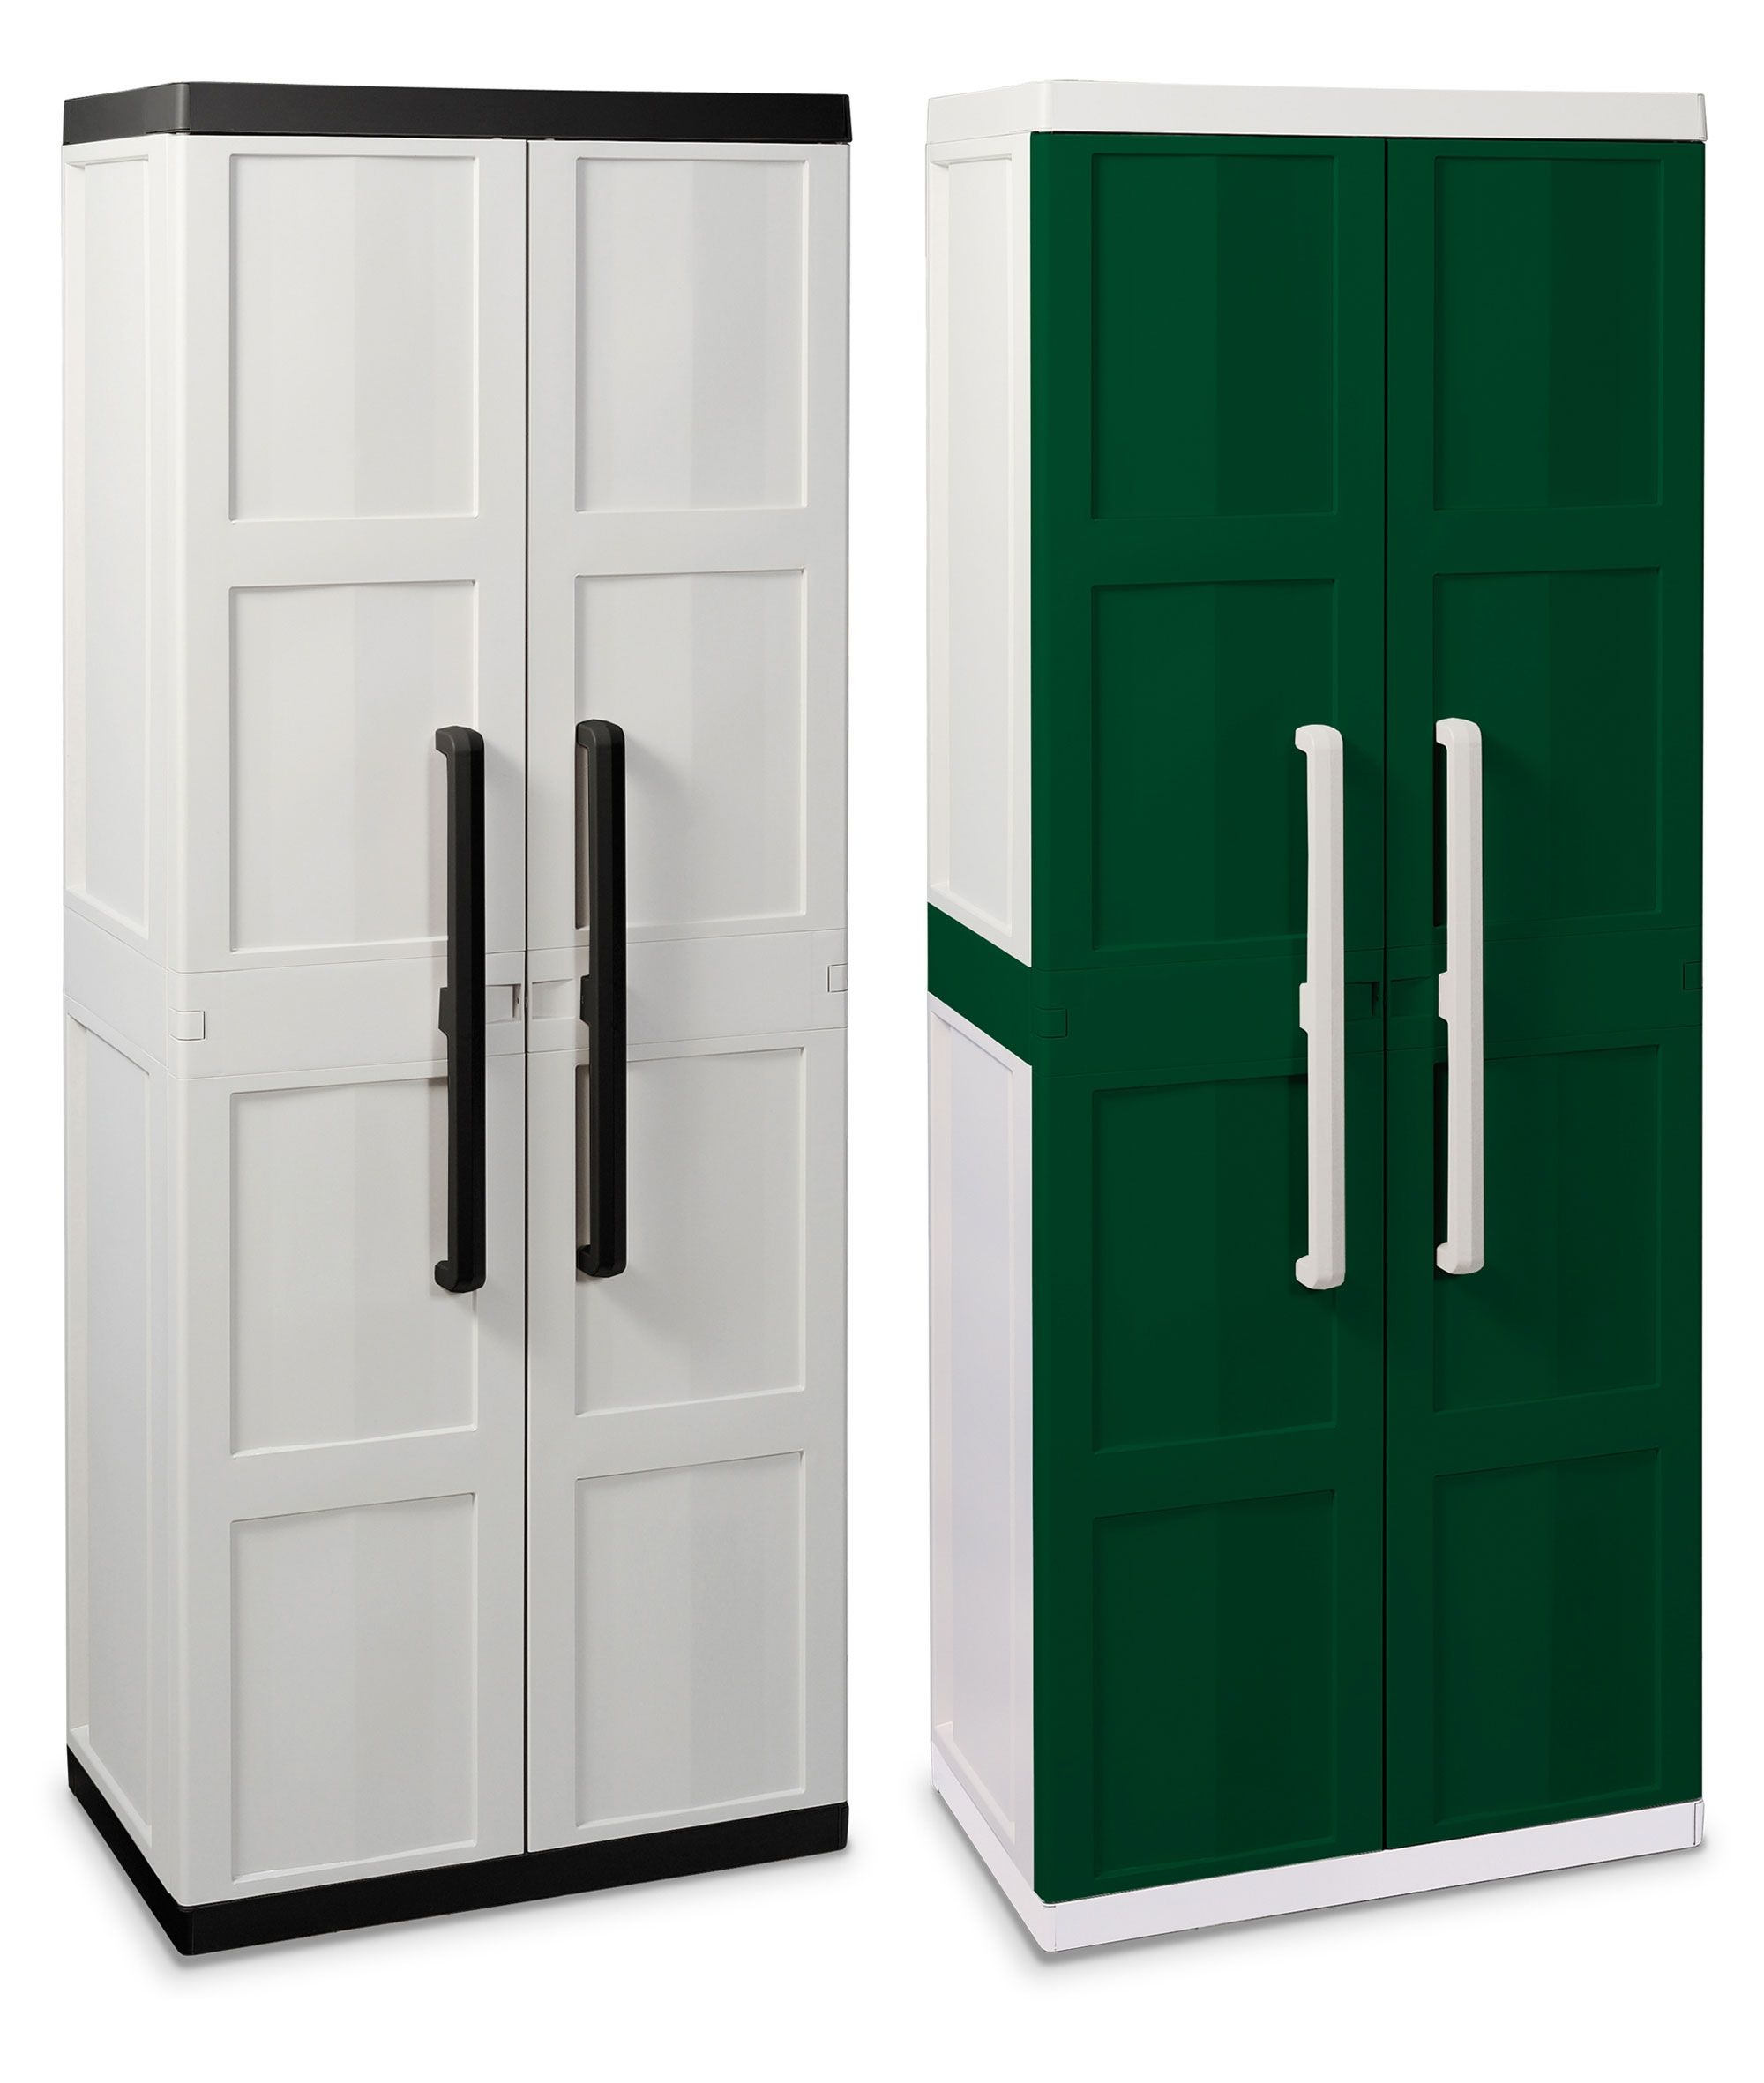 Plastic Storage Cabinet With Doors